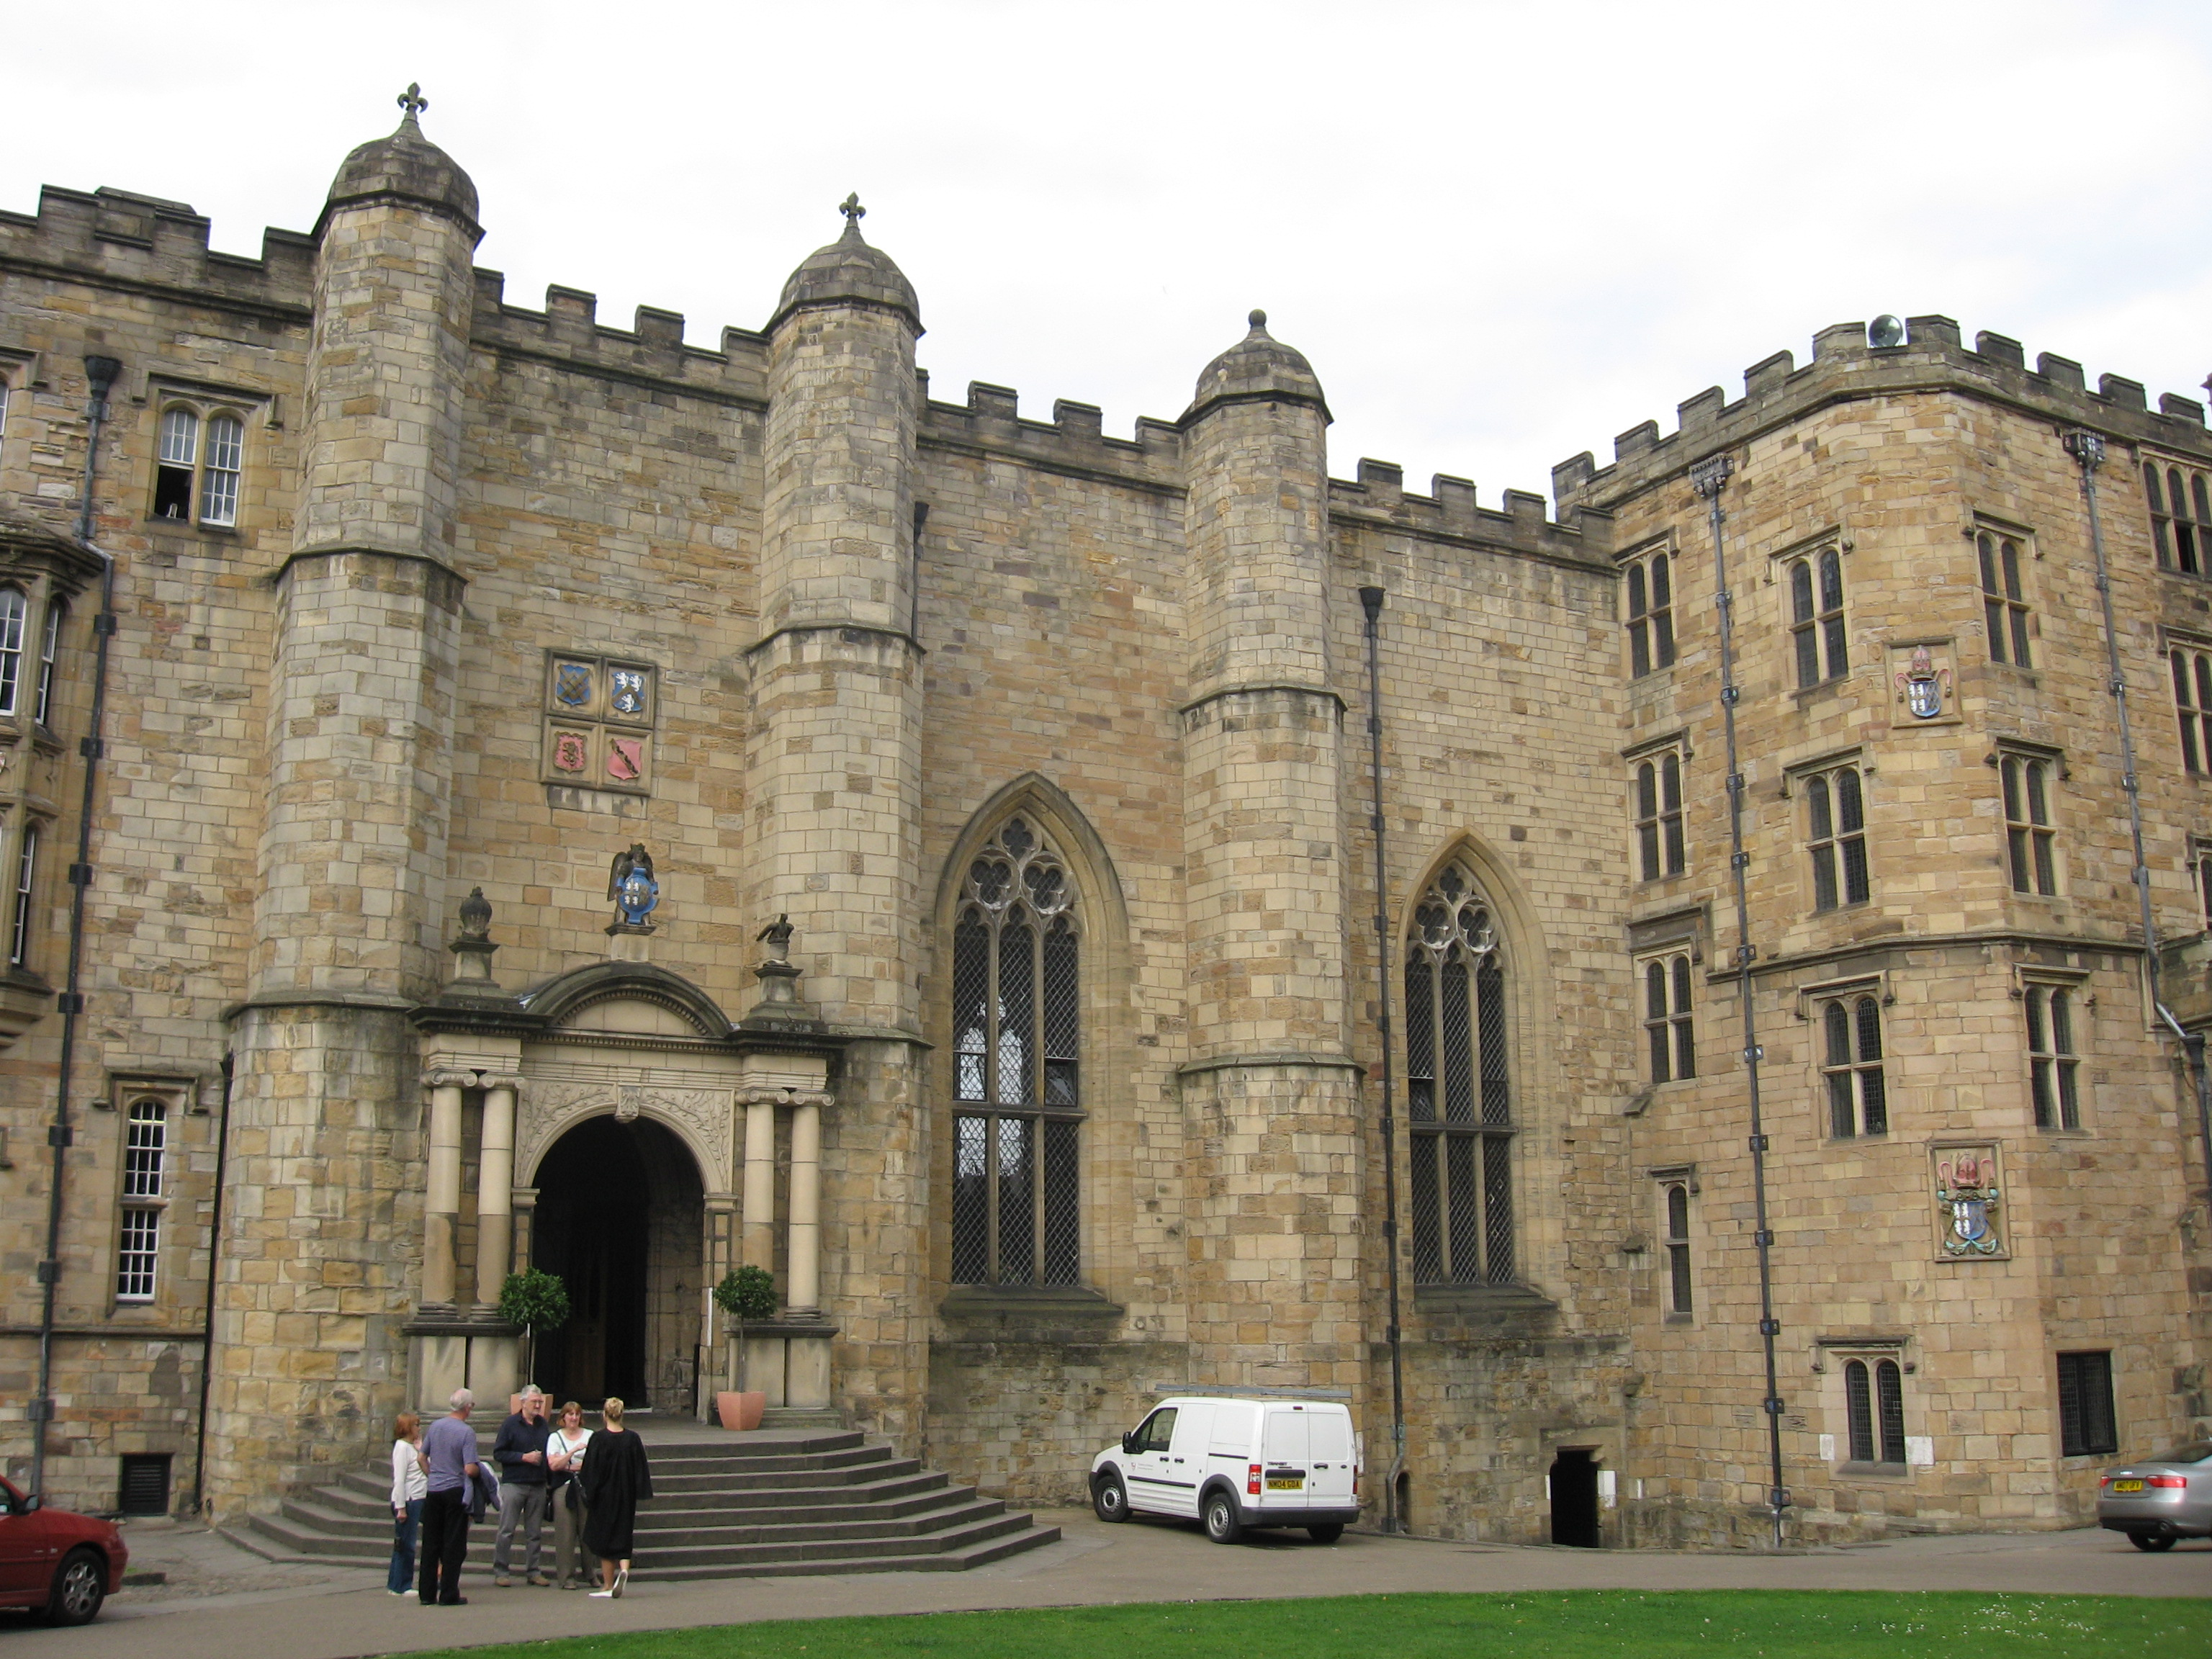 https://i1.wp.com/upload.wikimedia.org/wikipedia/commons/0/0d/Durham_Castle_Entrance.JPG